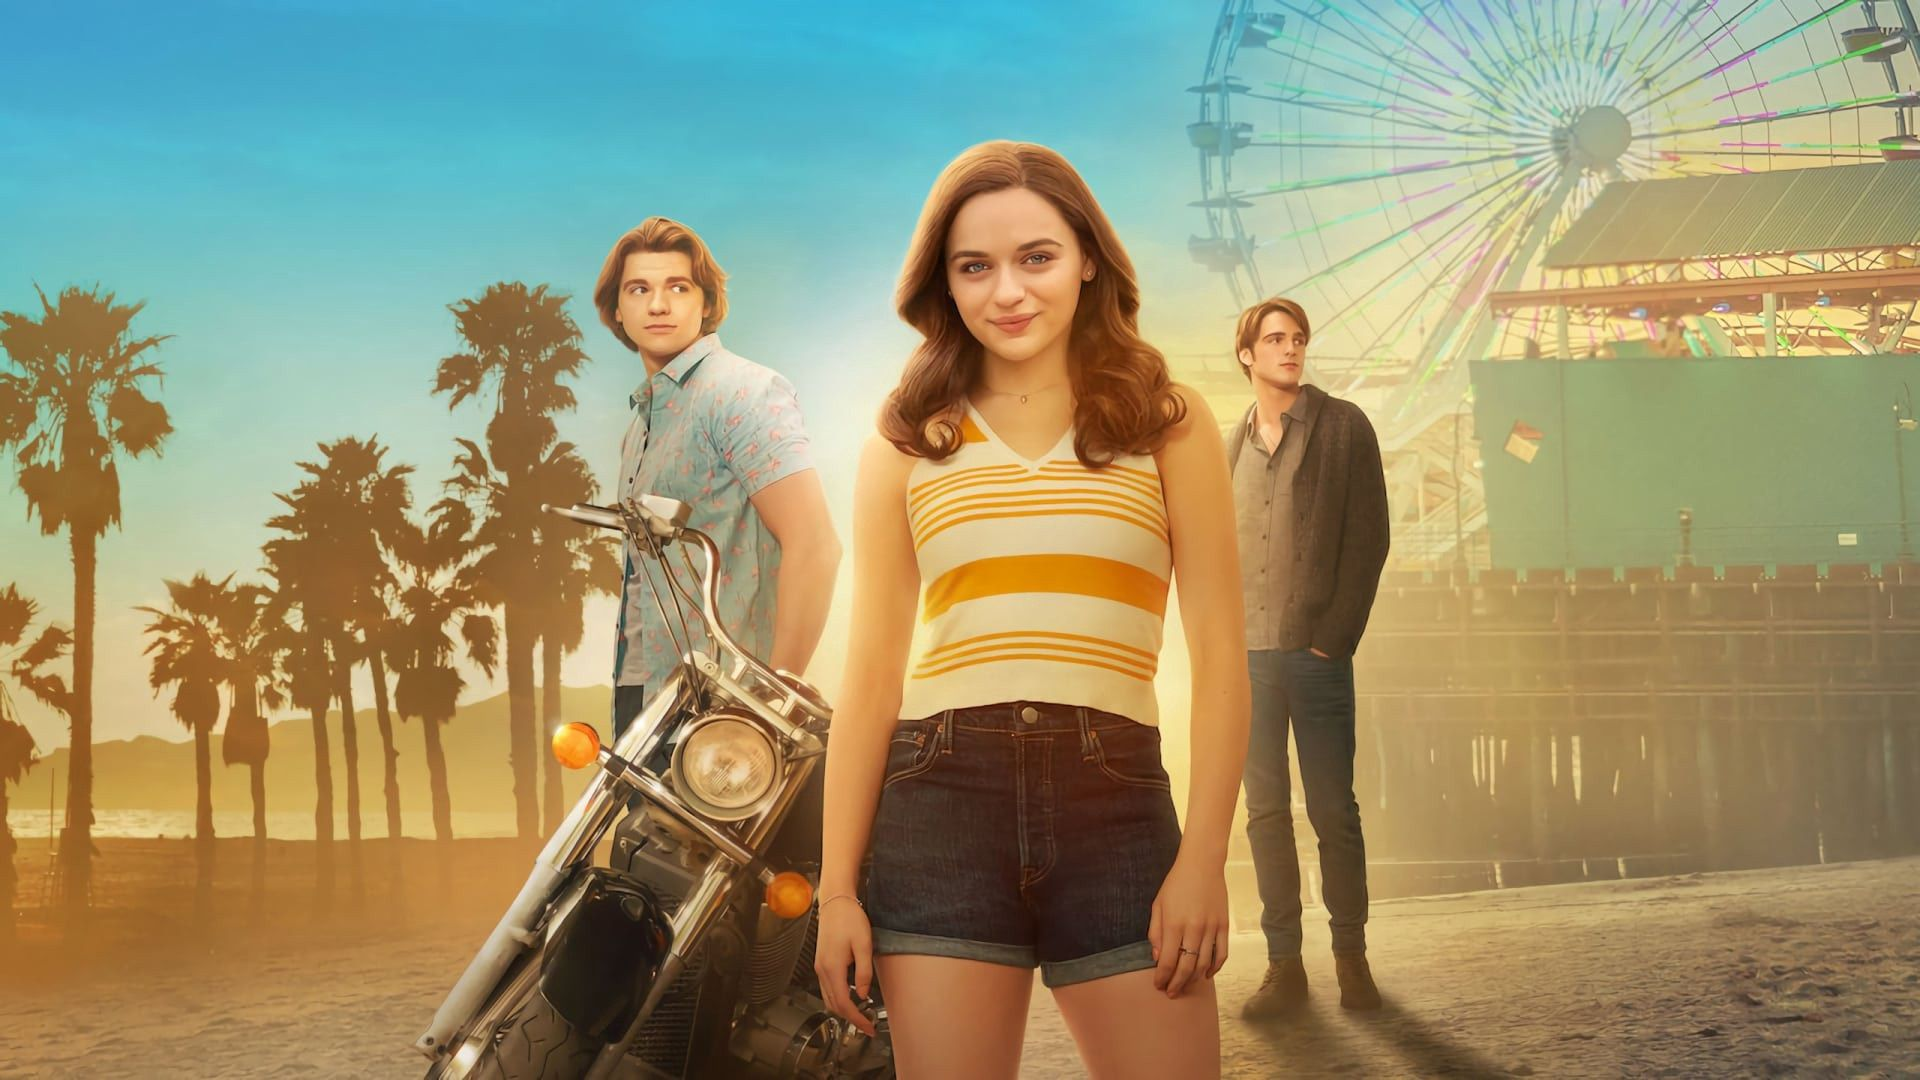 Netflix The Kissing Booth 2